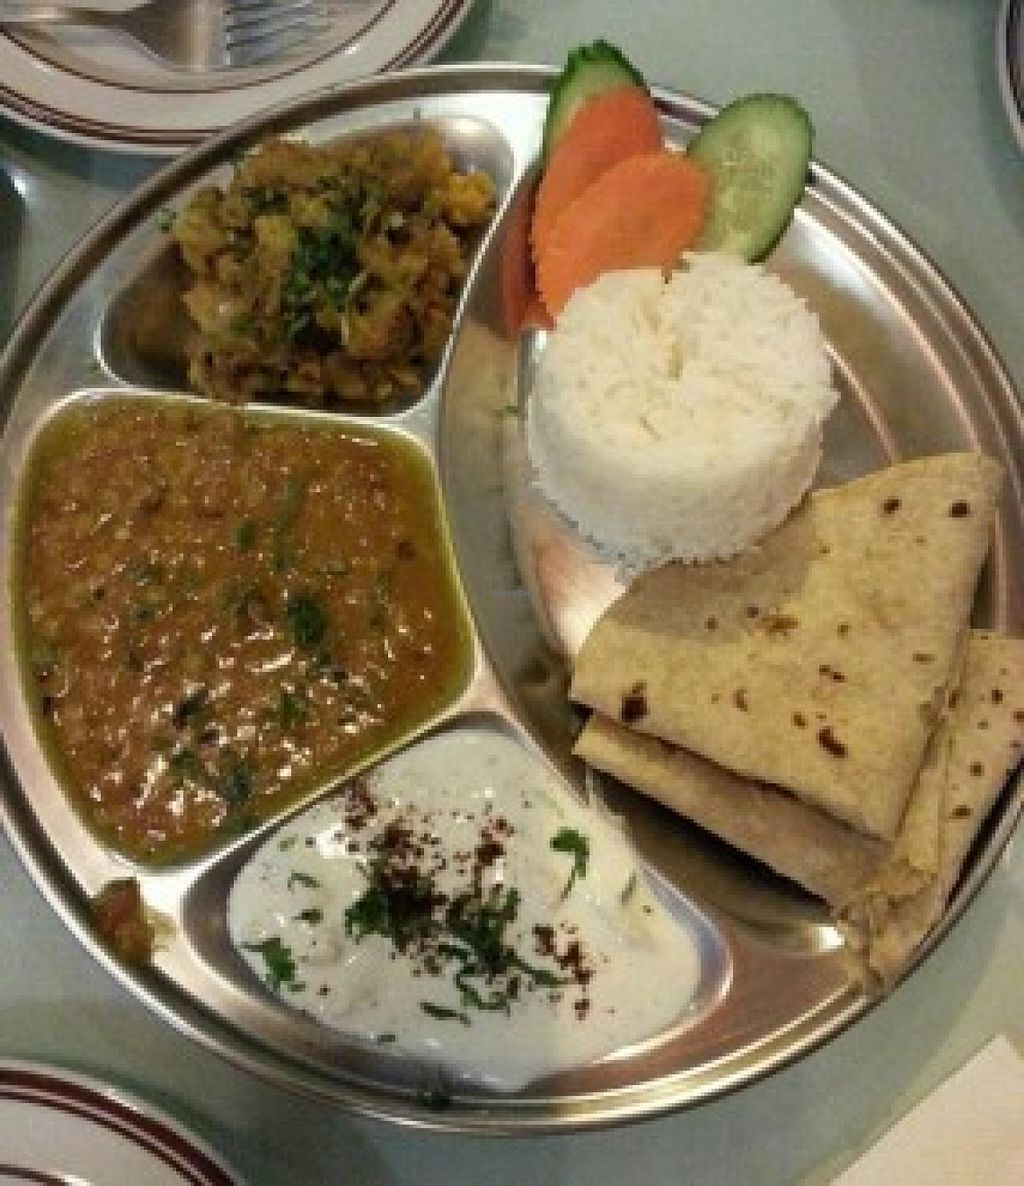 """Photo of Sharmaji Indian Veggie Restaurant  by <a href=""""/members/profile/Stevie"""">Stevie</a> <br/>2 <br/> May 28, 2015  - <a href='/contact/abuse/image/23497/103854'>Report</a>"""